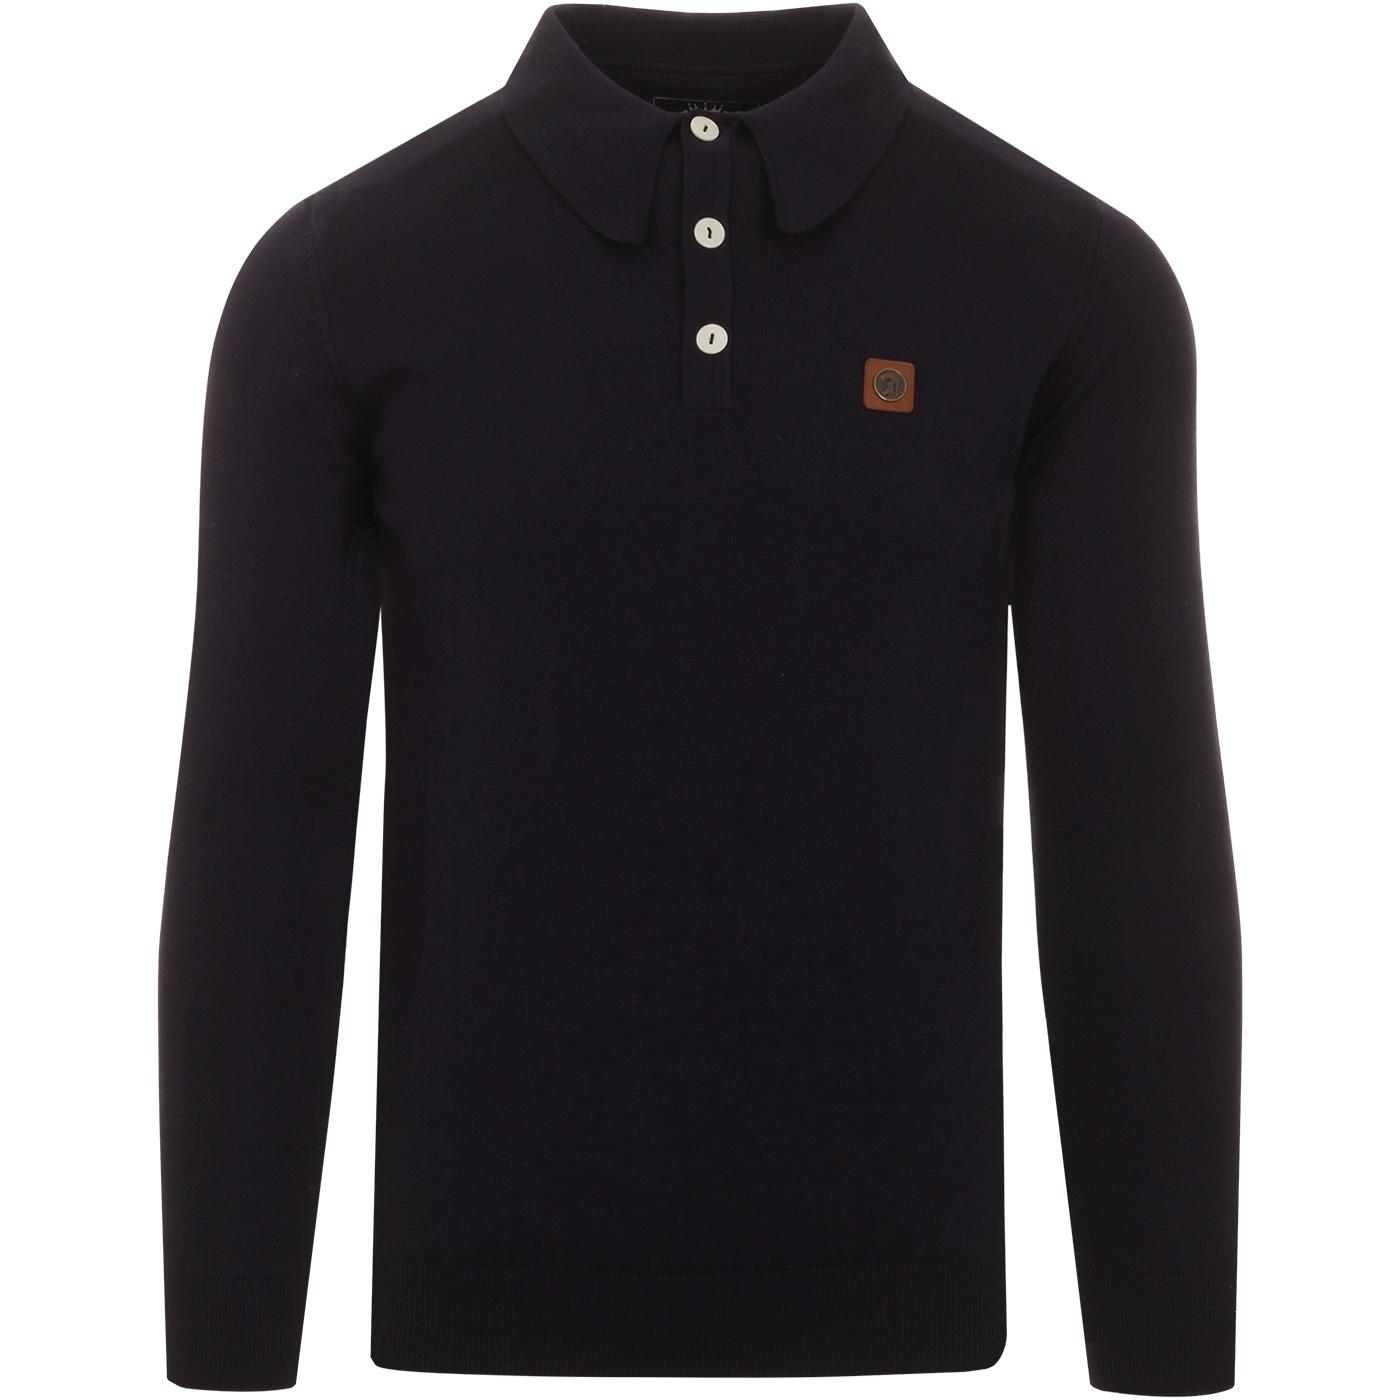 TROJAN RECORDS Men's Mod Knitted Polo Shirt (Navy)